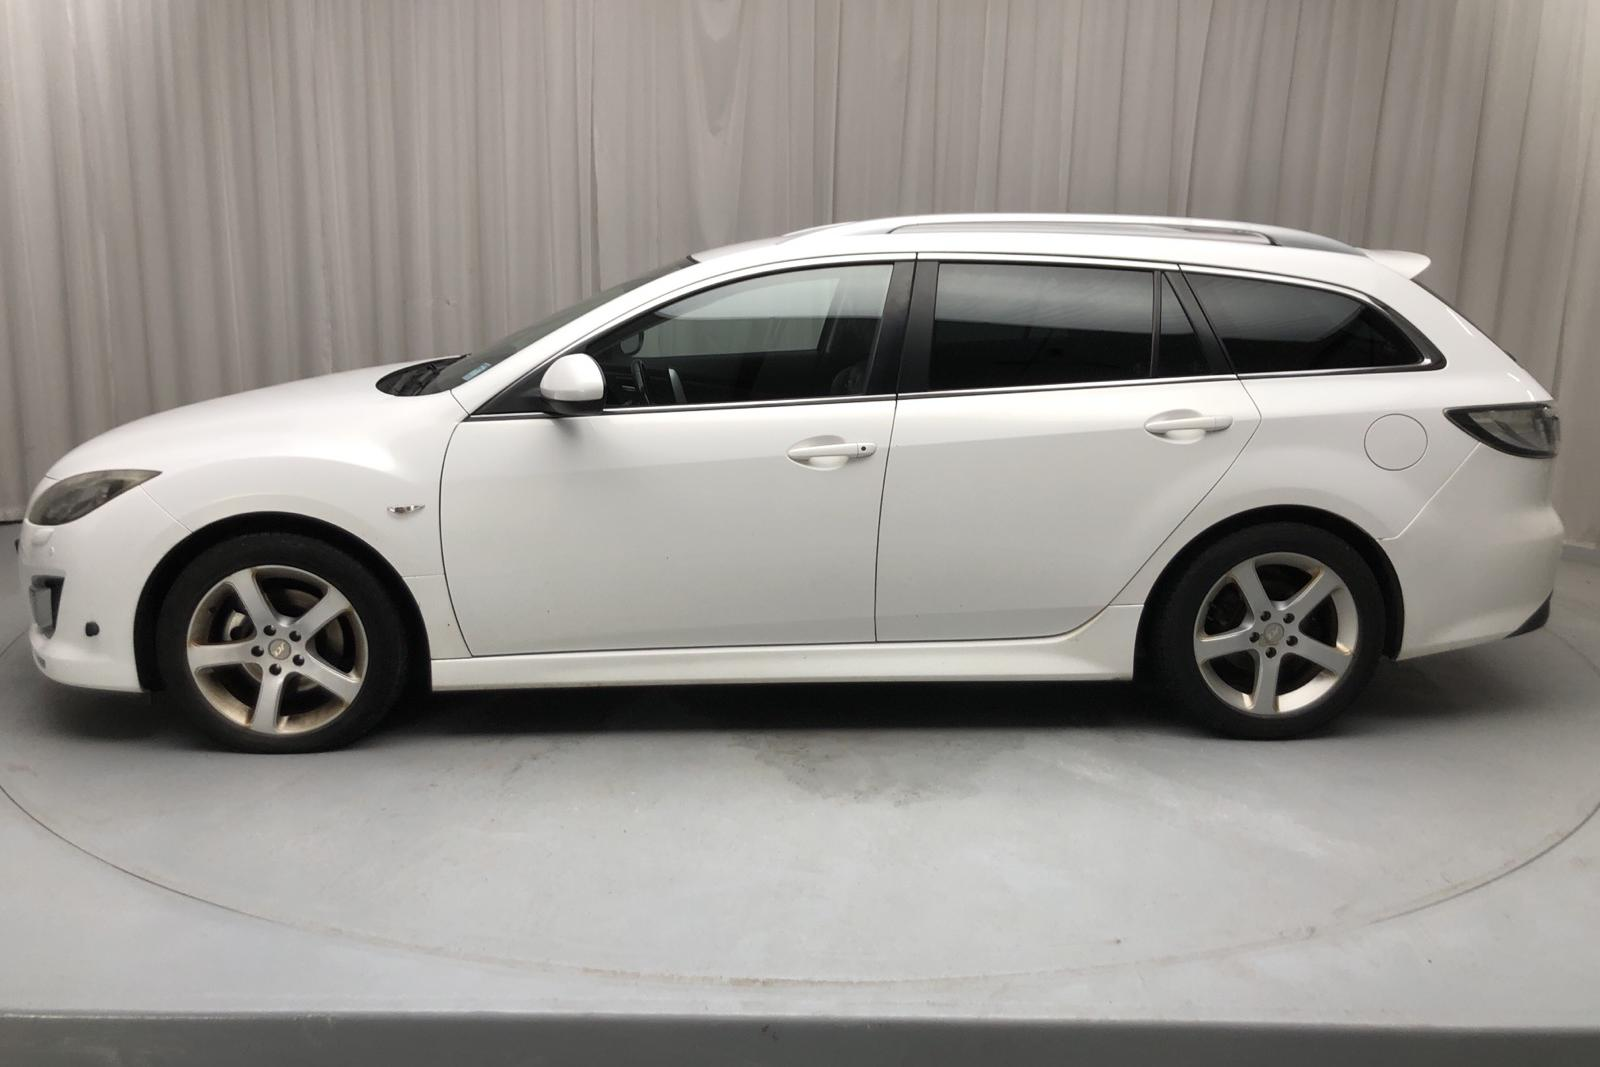 Mazda 6 2.5 Kombi (170hk) - 233 890 km - Manual - white - 2008